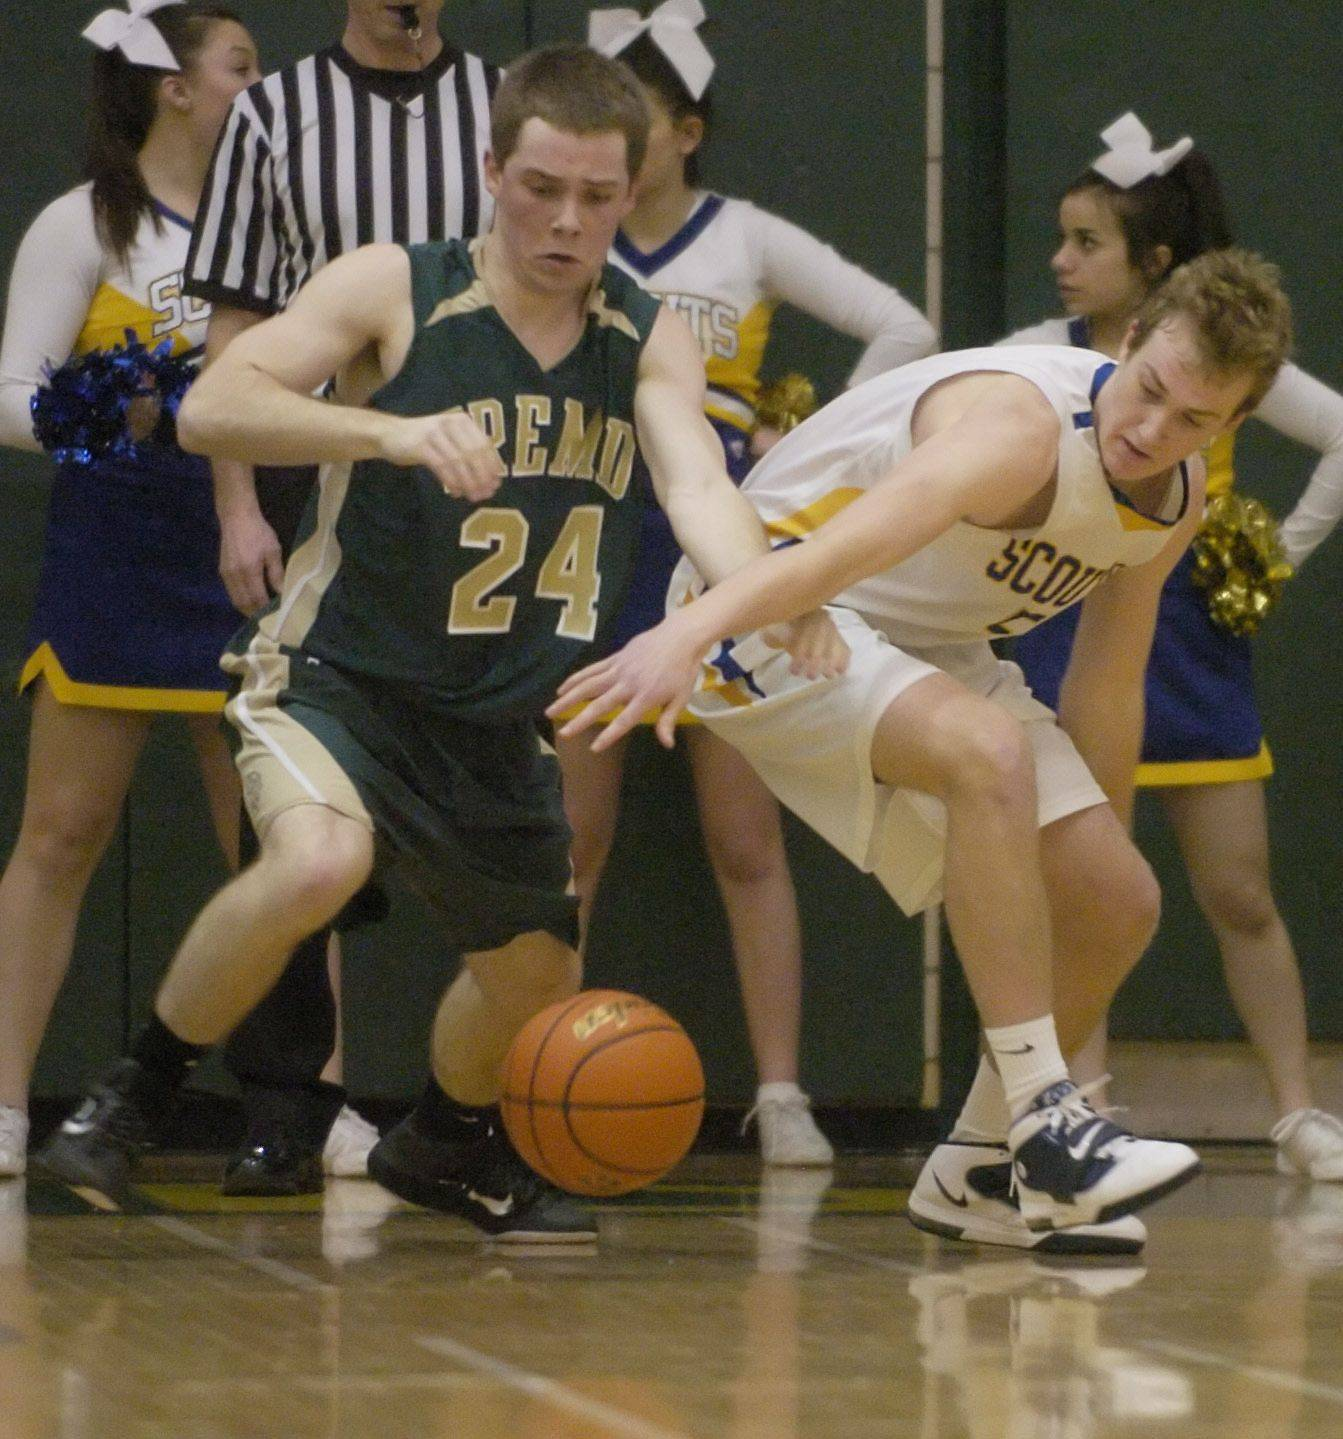 Images from the Fremd vs. Lake Forest boys regional championship basketball game in Palatine on Friday, March 4th.